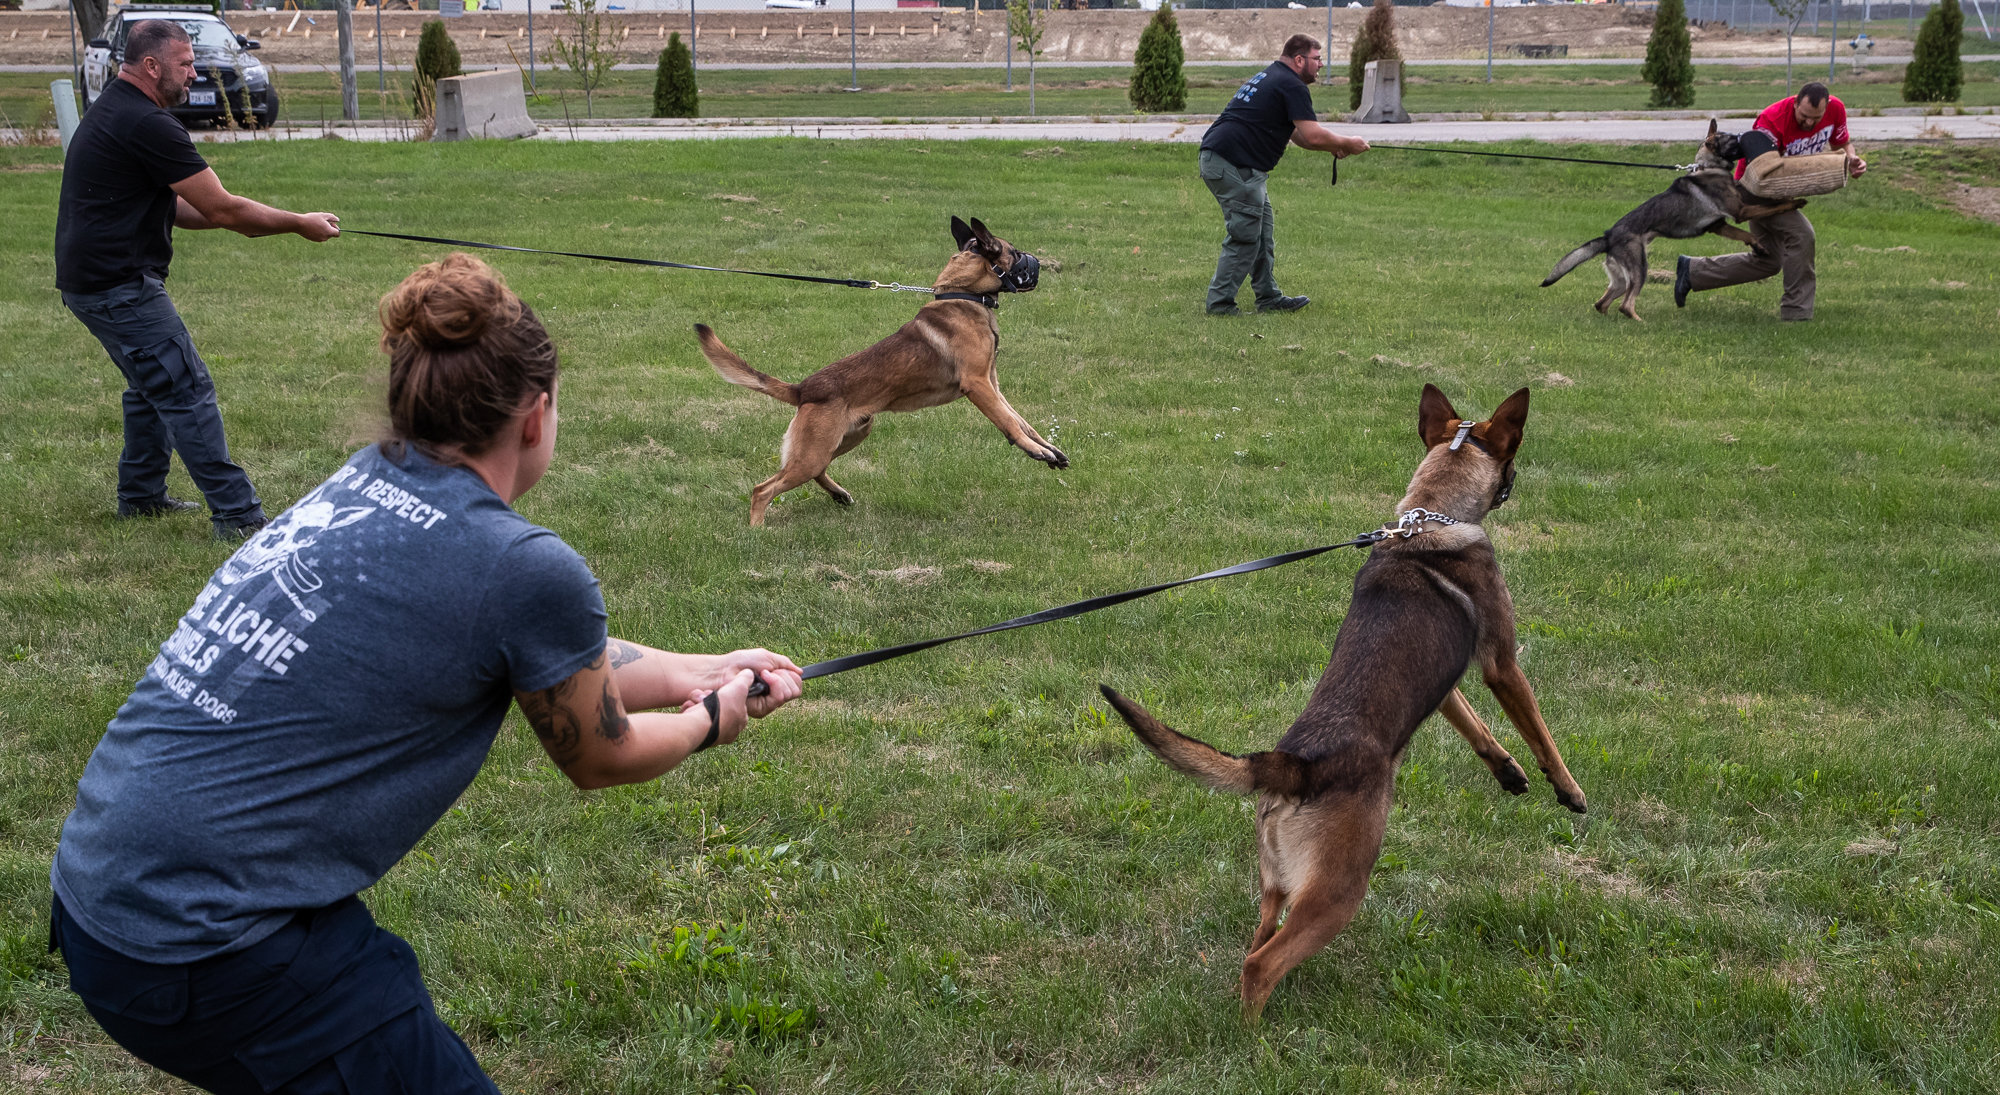 Law enforcement officers from around the United States train with their police dogs on how to capture a suspect at Vohne Liche Kennels, in Indiana, on Sept. 23, 2020. Dogs are muzzled for the protection of the man acting as a decoy, who is not wearing typical bite gear for this training exercise.